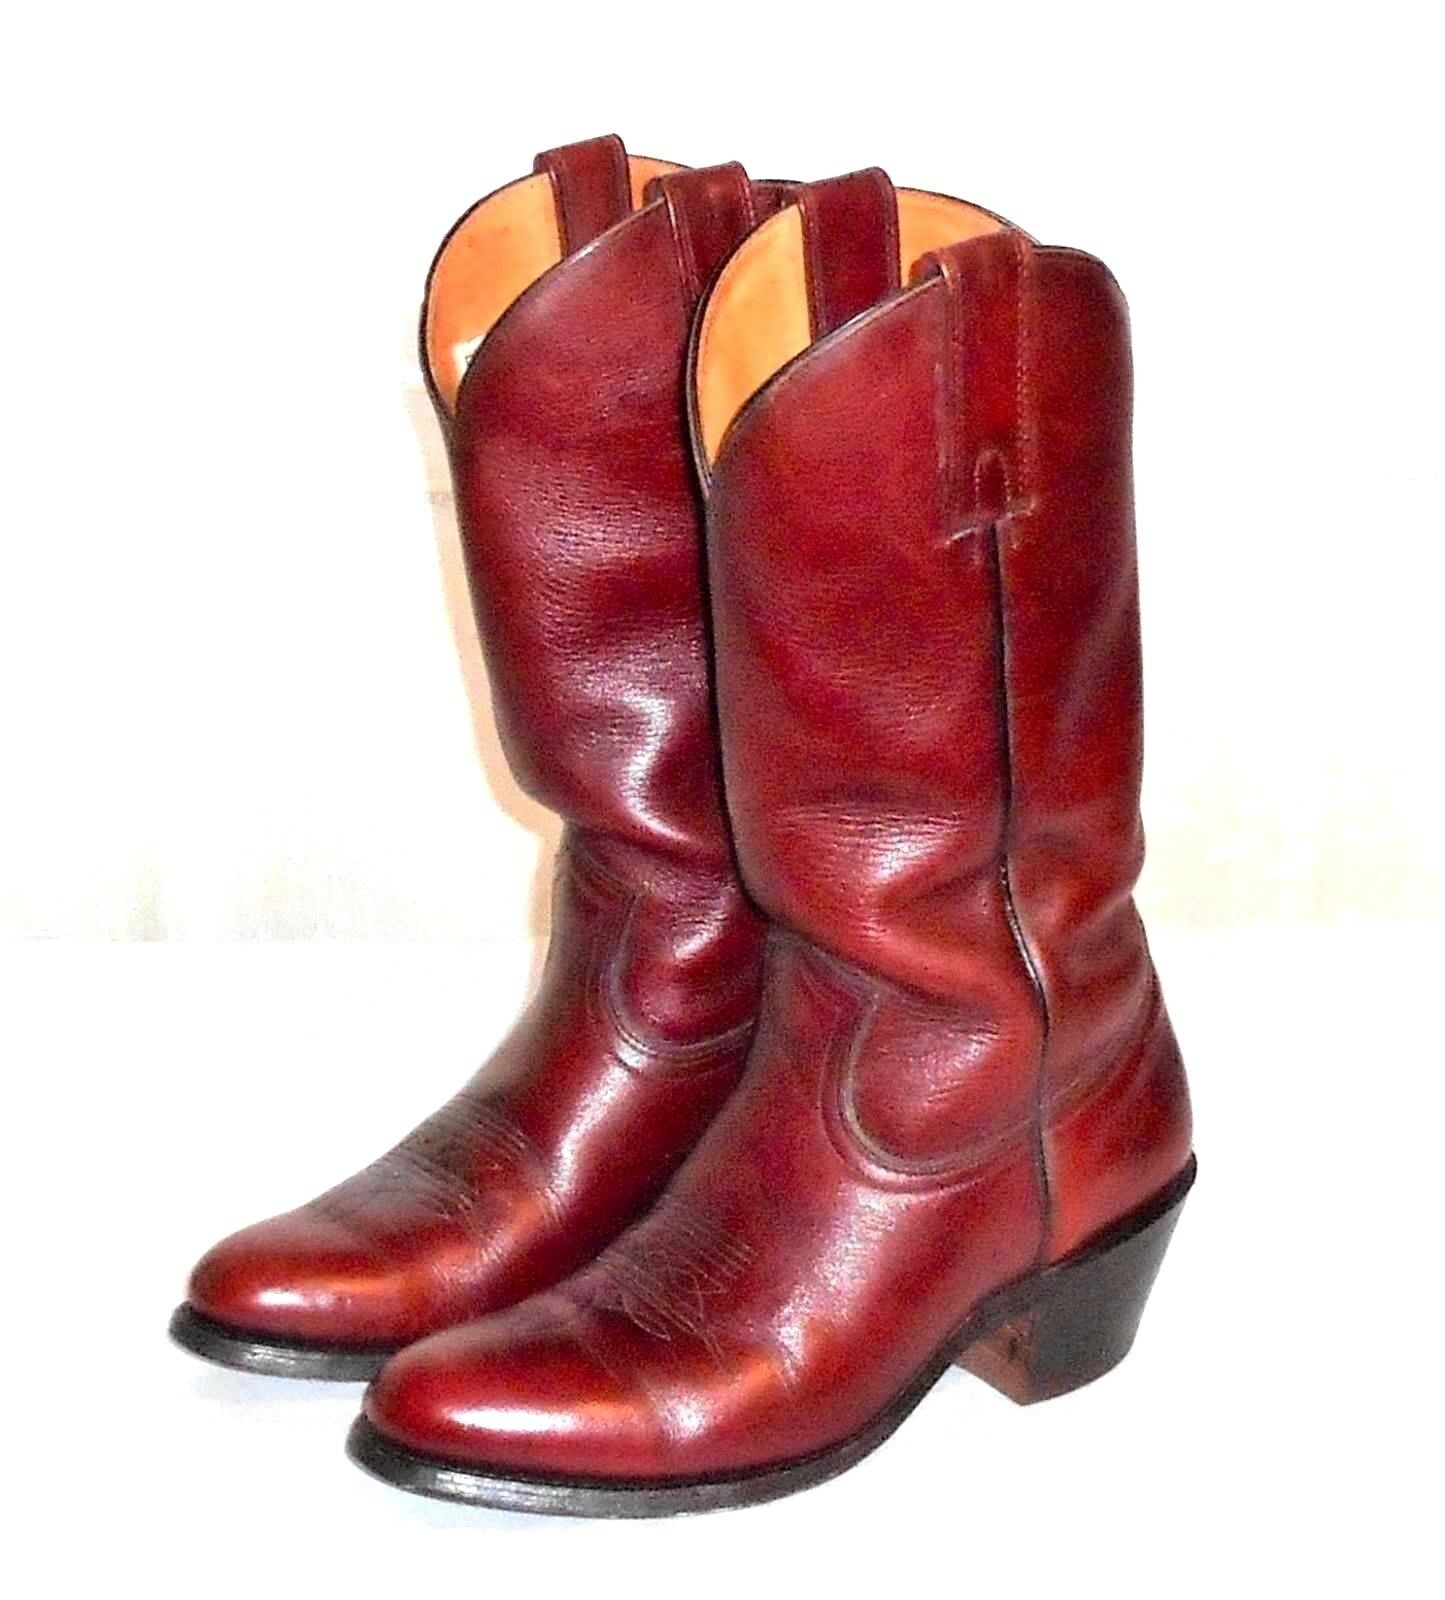 Frye 2356 Reddish Brown Leather Western Cowboy Boot Made in USA Men's 9 D